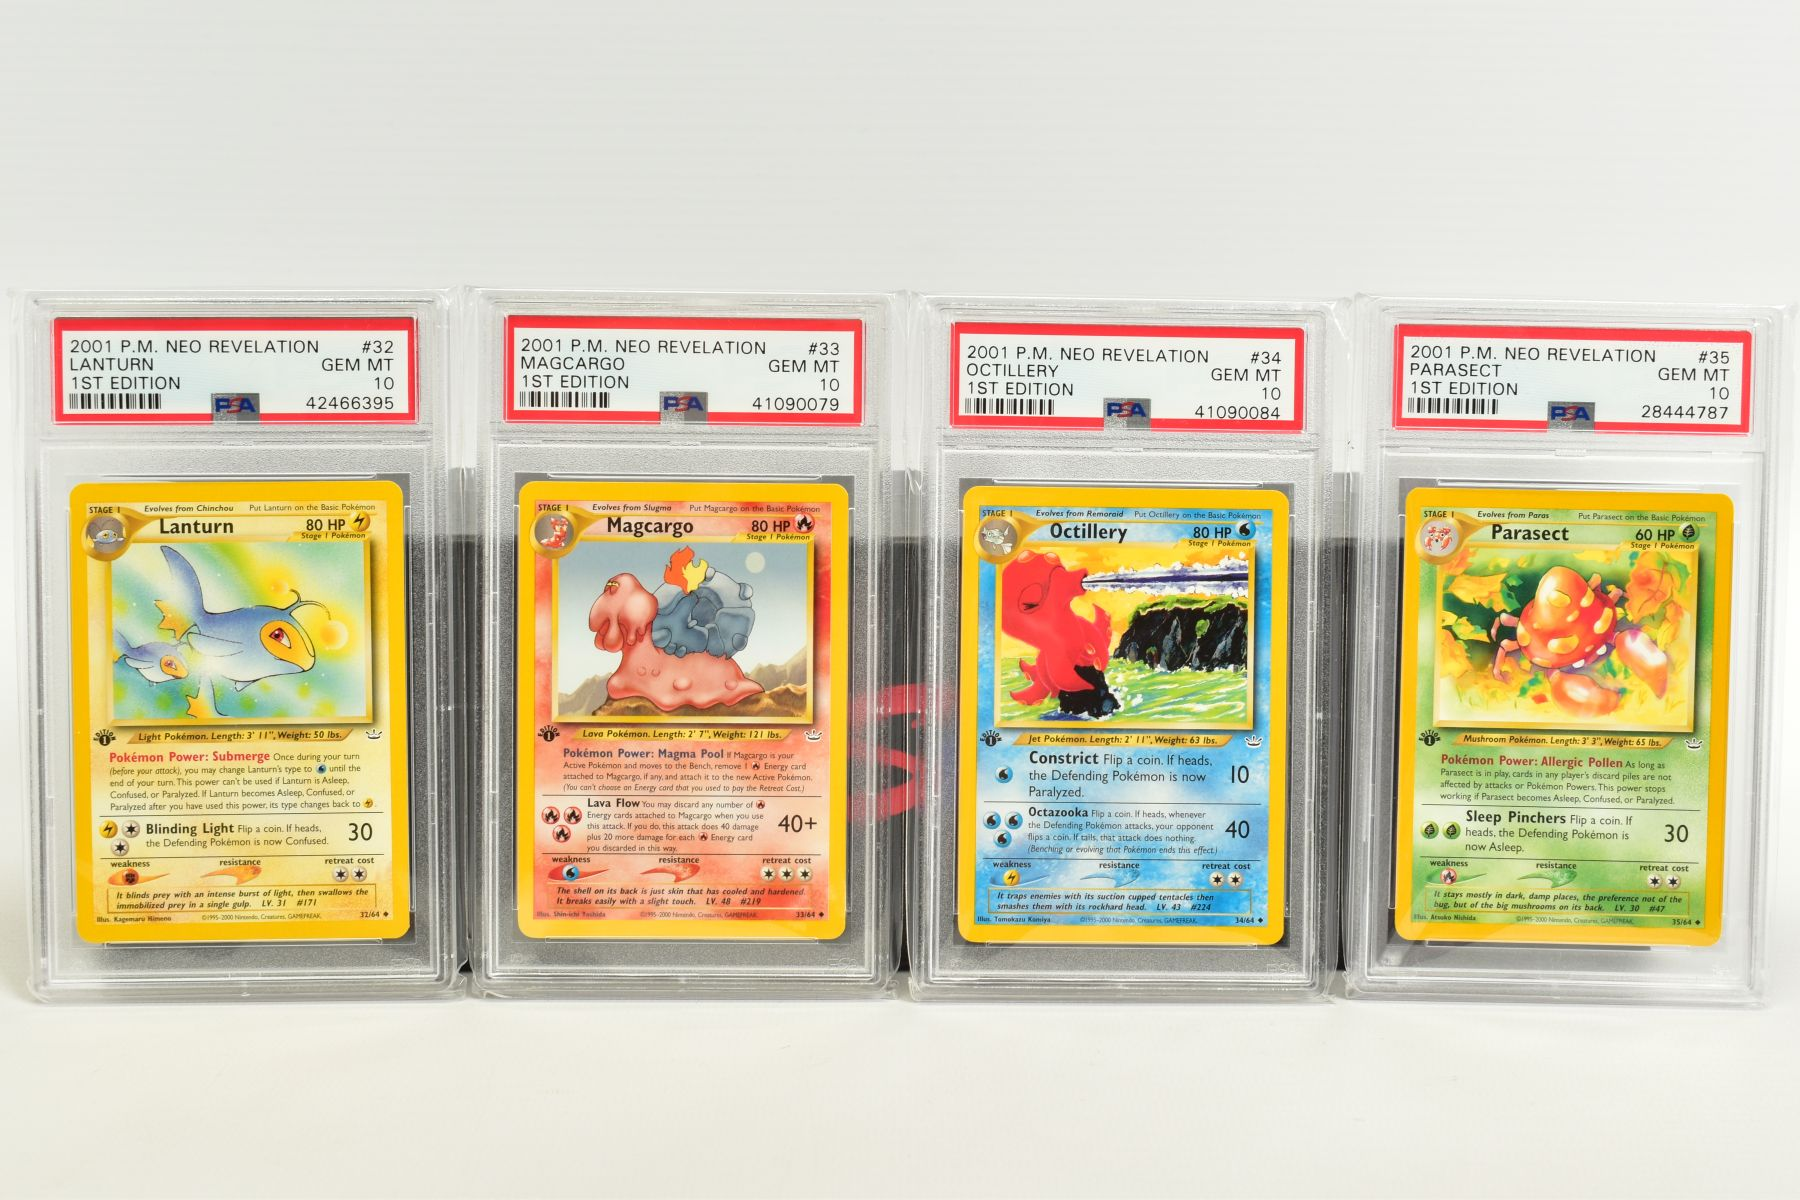 A QUANTITY OF PSA GRADED POKEMON 1ST EDITION NEO REVELATION SET CARDS, all are graded GEM MINT 10 - Image 7 of 14